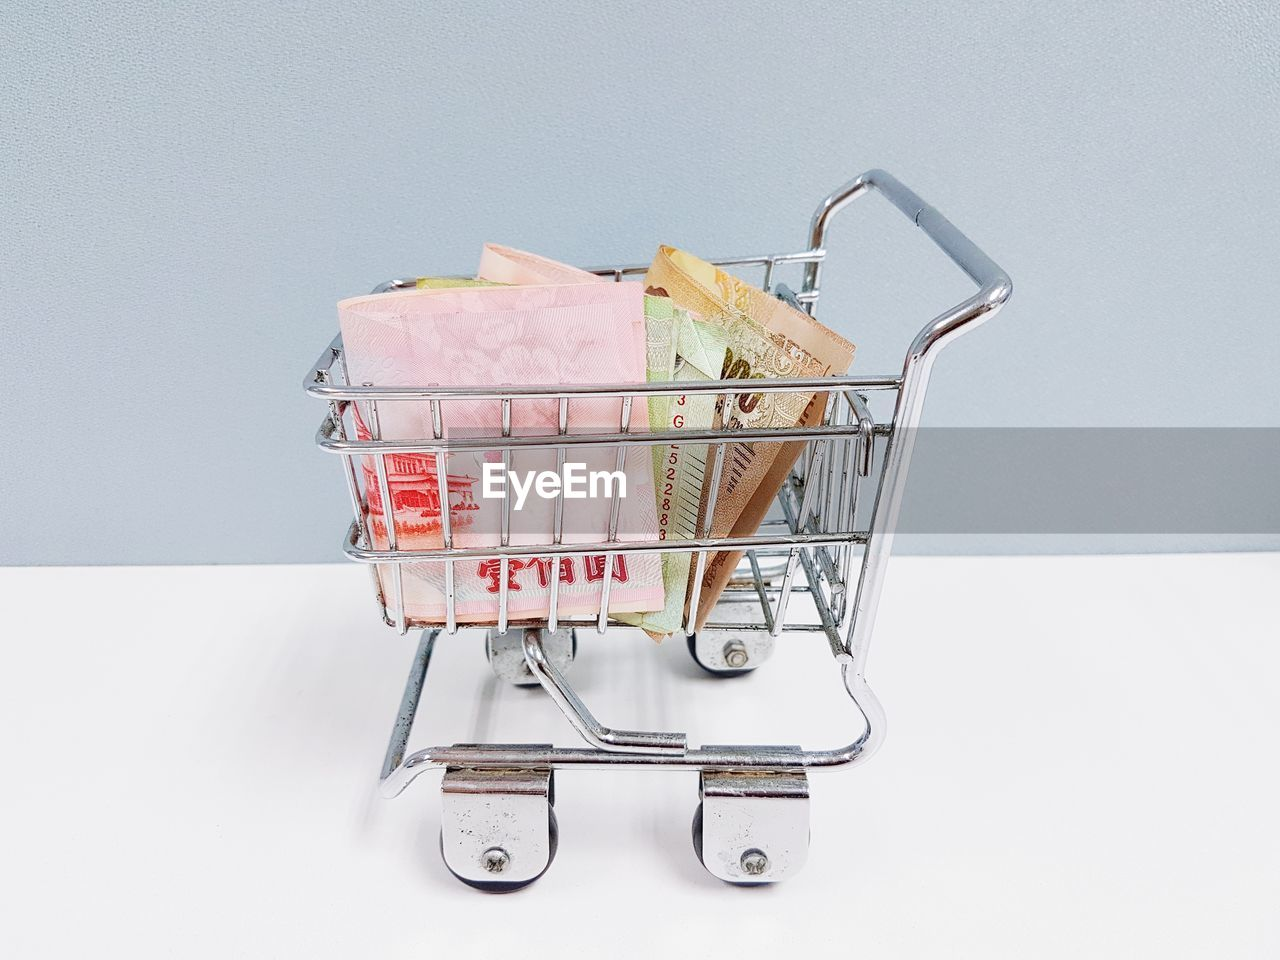 shopping cart, shopping, studio shot, indoors, no people, still life, consumerism, white background, retail, supermarket, close-up, cut out, copy space, food and drink, food, metal, group of objects, large group of objects, abundance, container, shopping basket, groceries